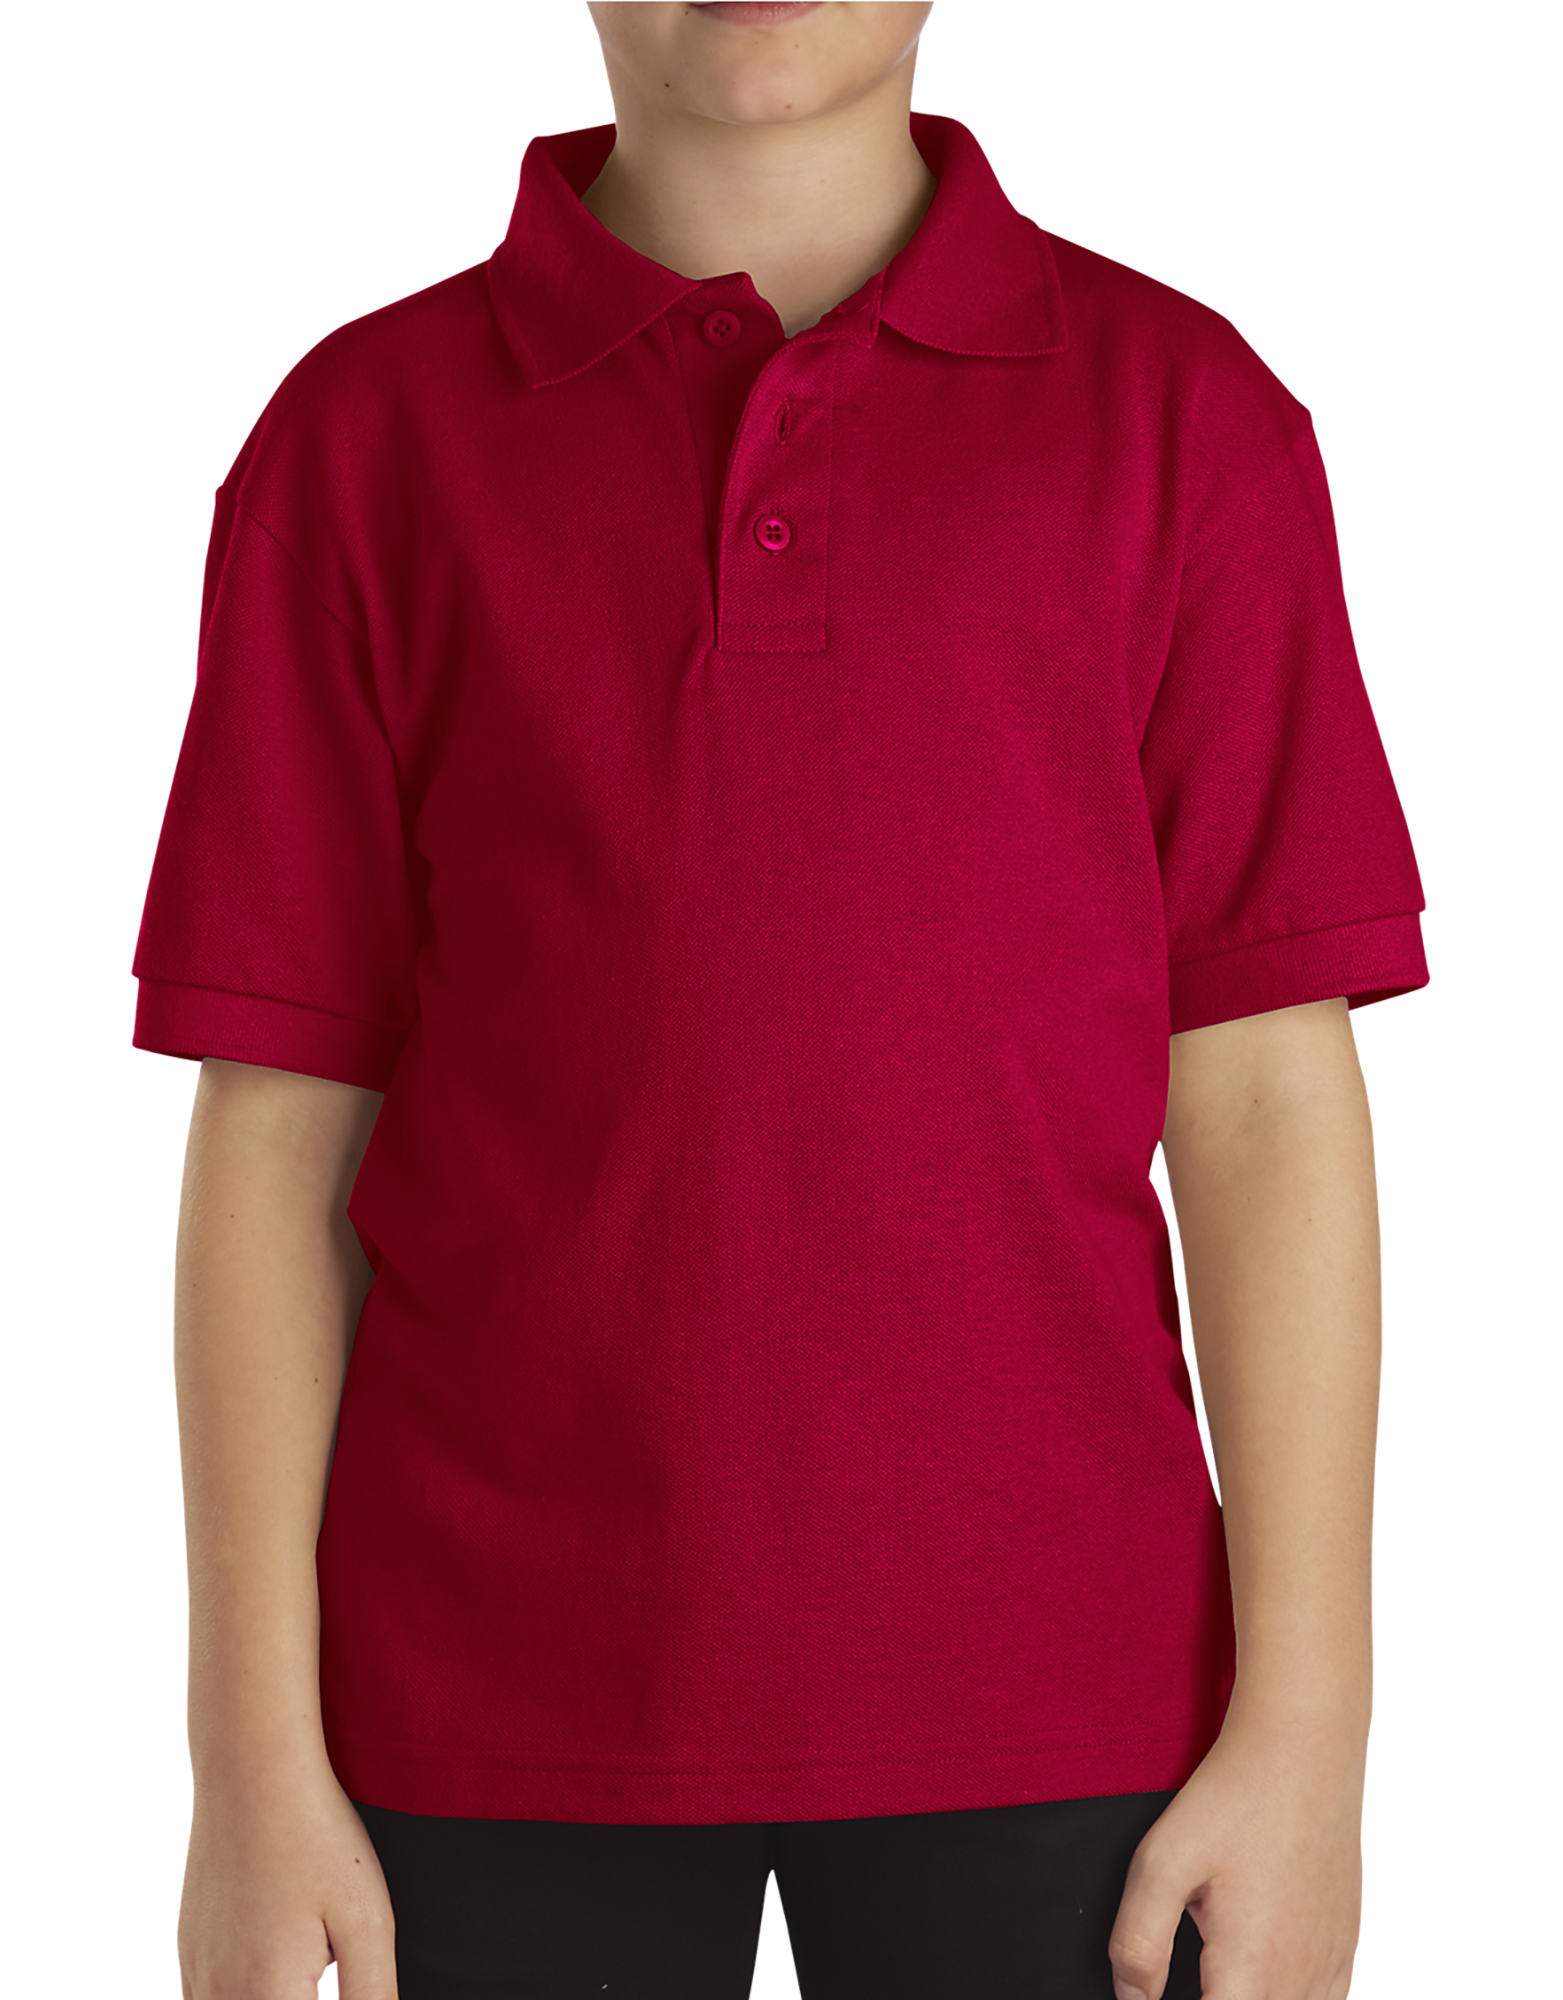 Kids' Short Sleeve Pique Polo Shirt, 4-7 - English Red (ER)